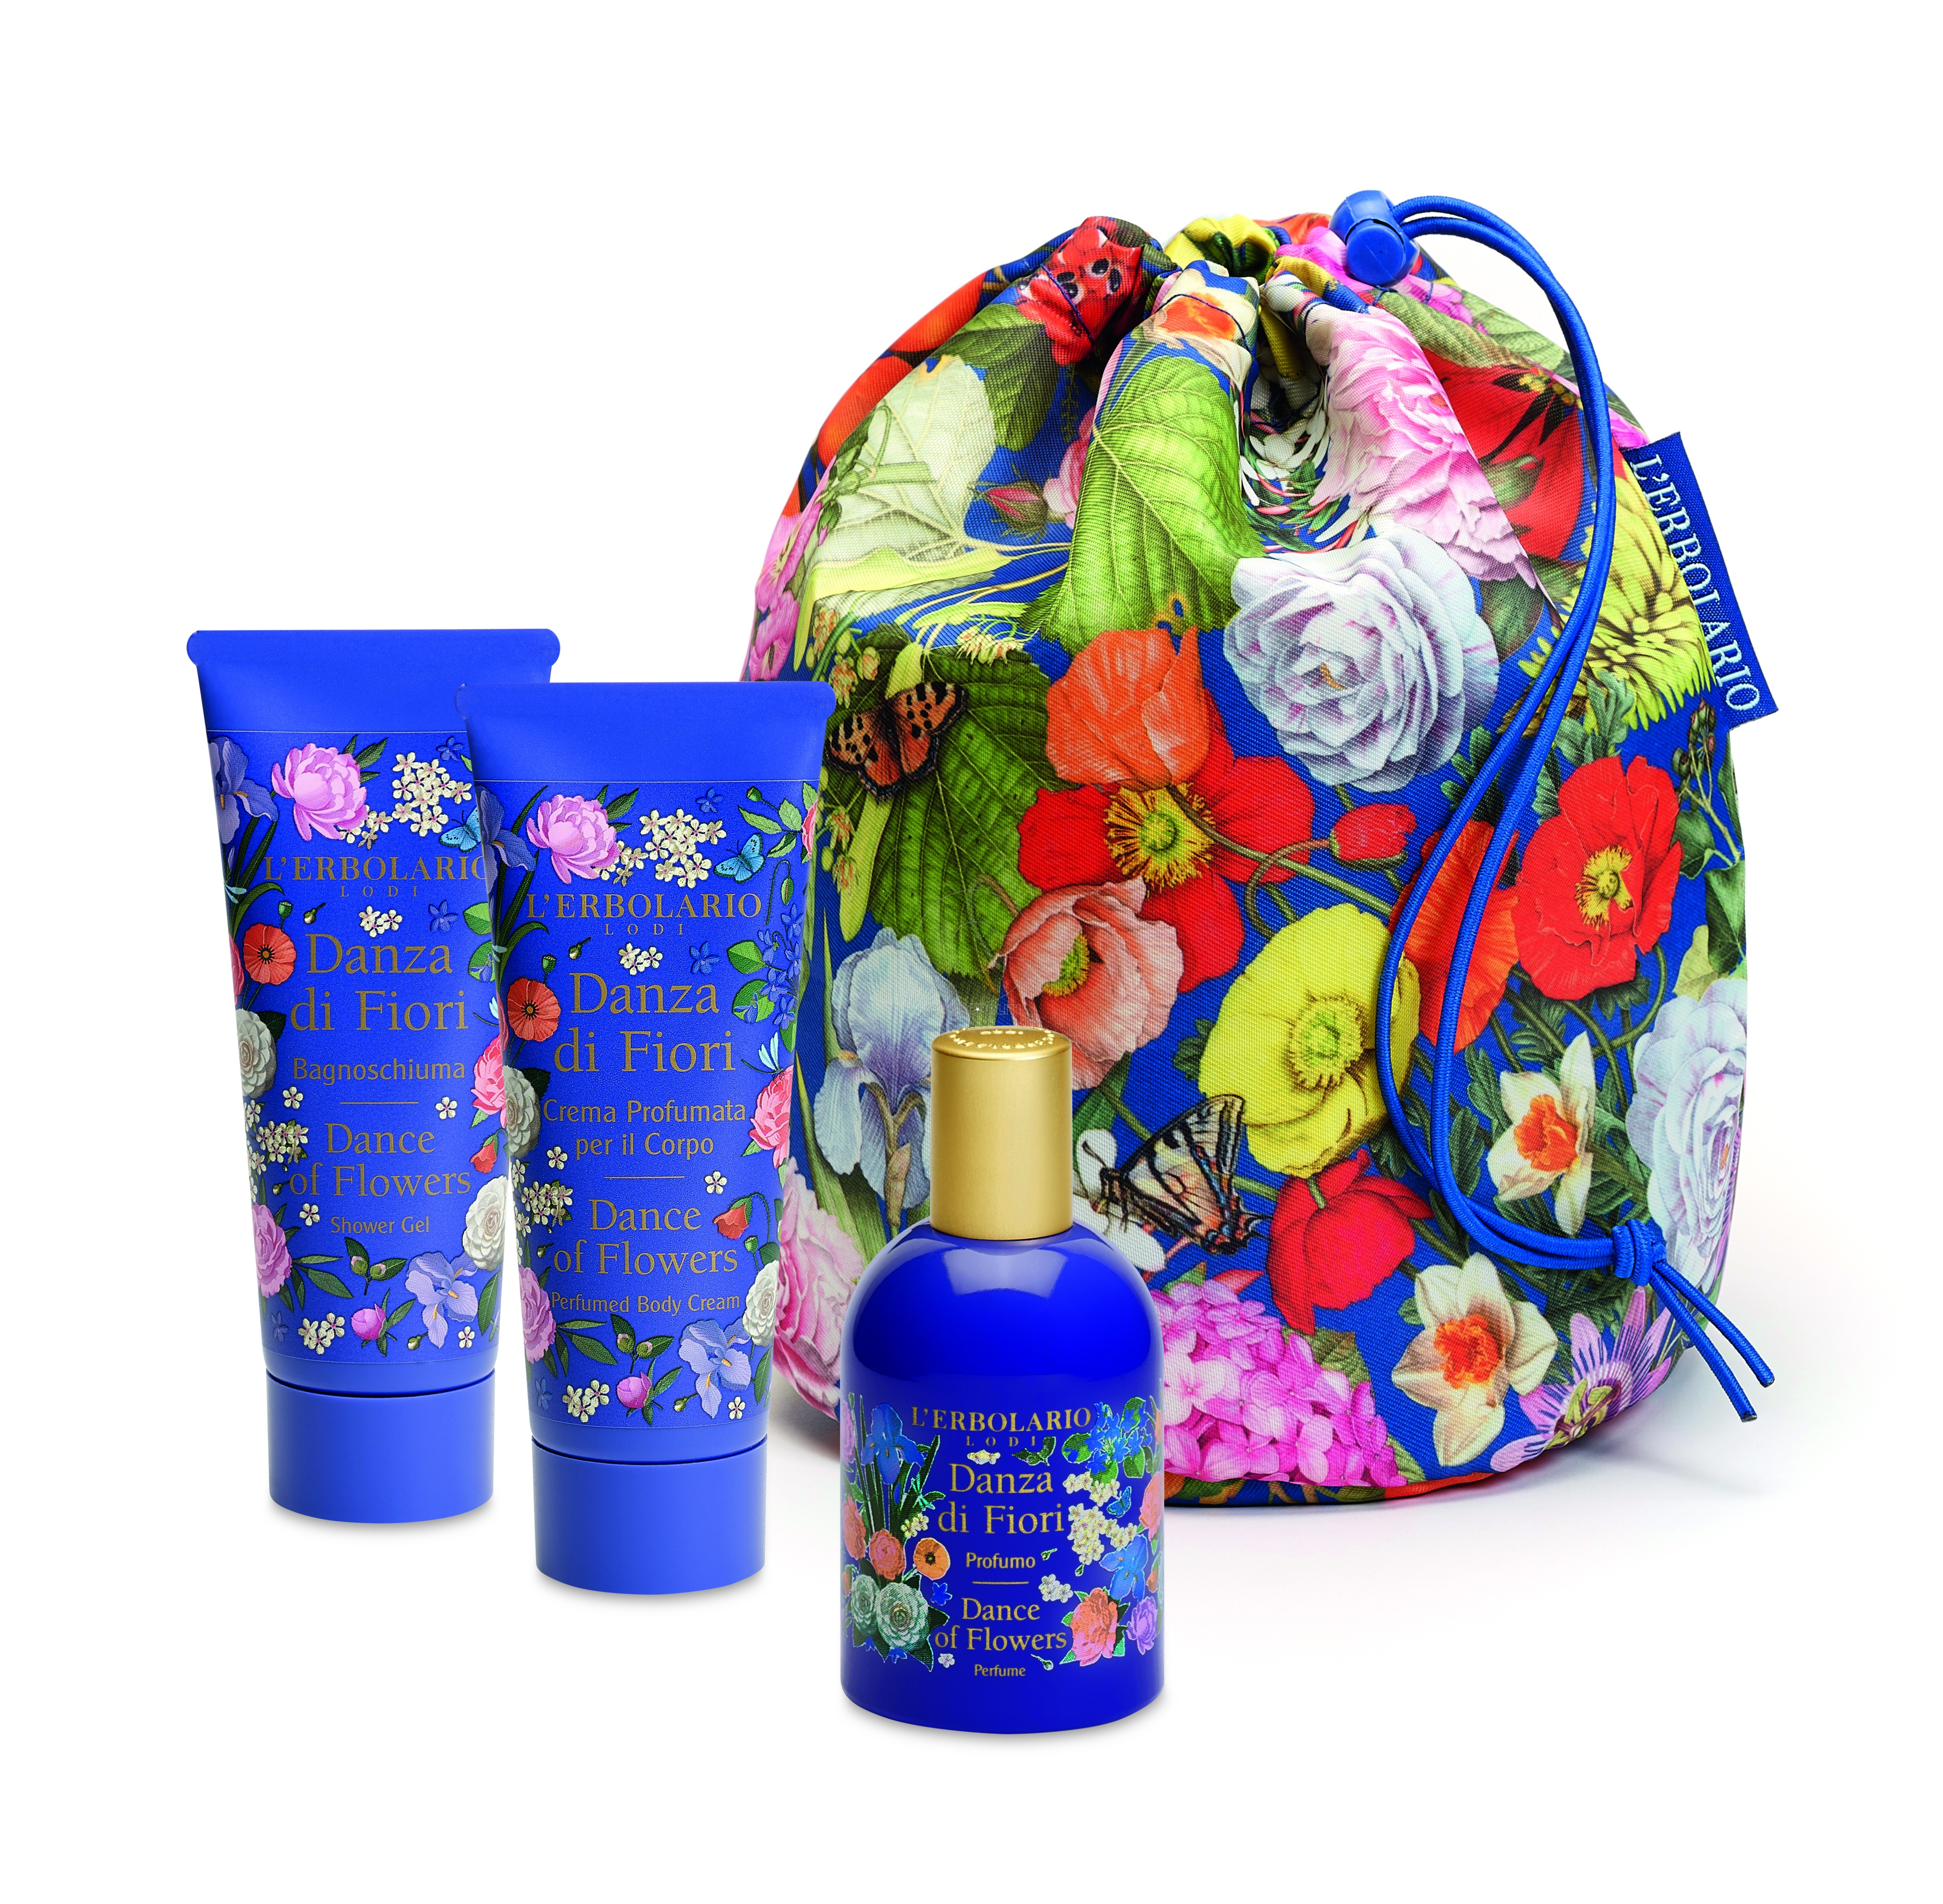 Beauty Bag Trio Danza di Fiori